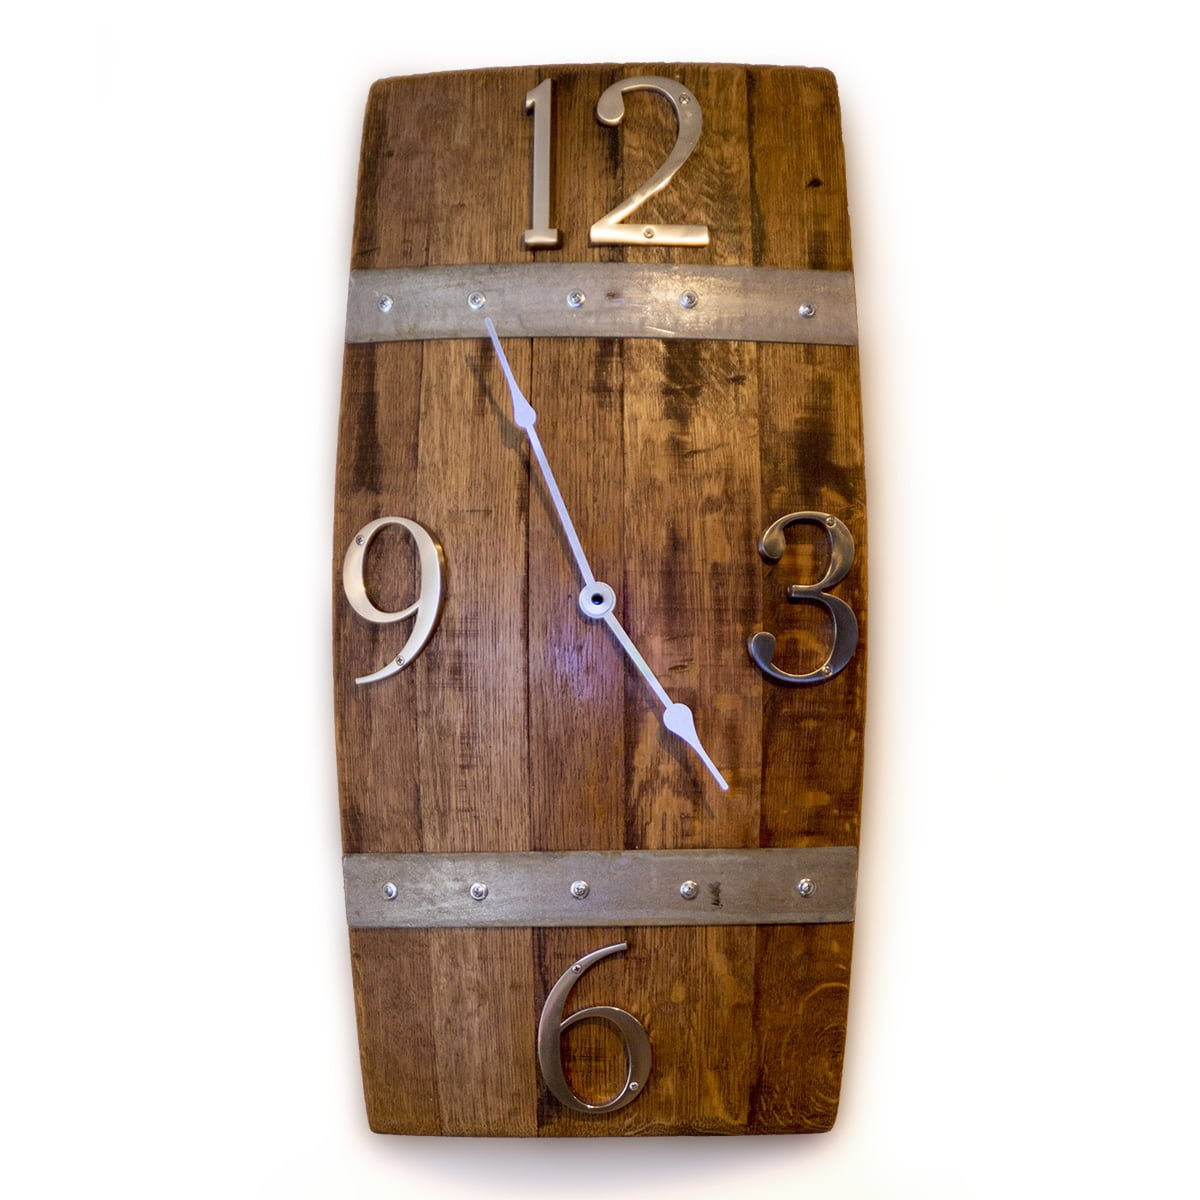 Barrel stave wall clock ofloinn decor barrel stave wall clock amipublicfo Image collections